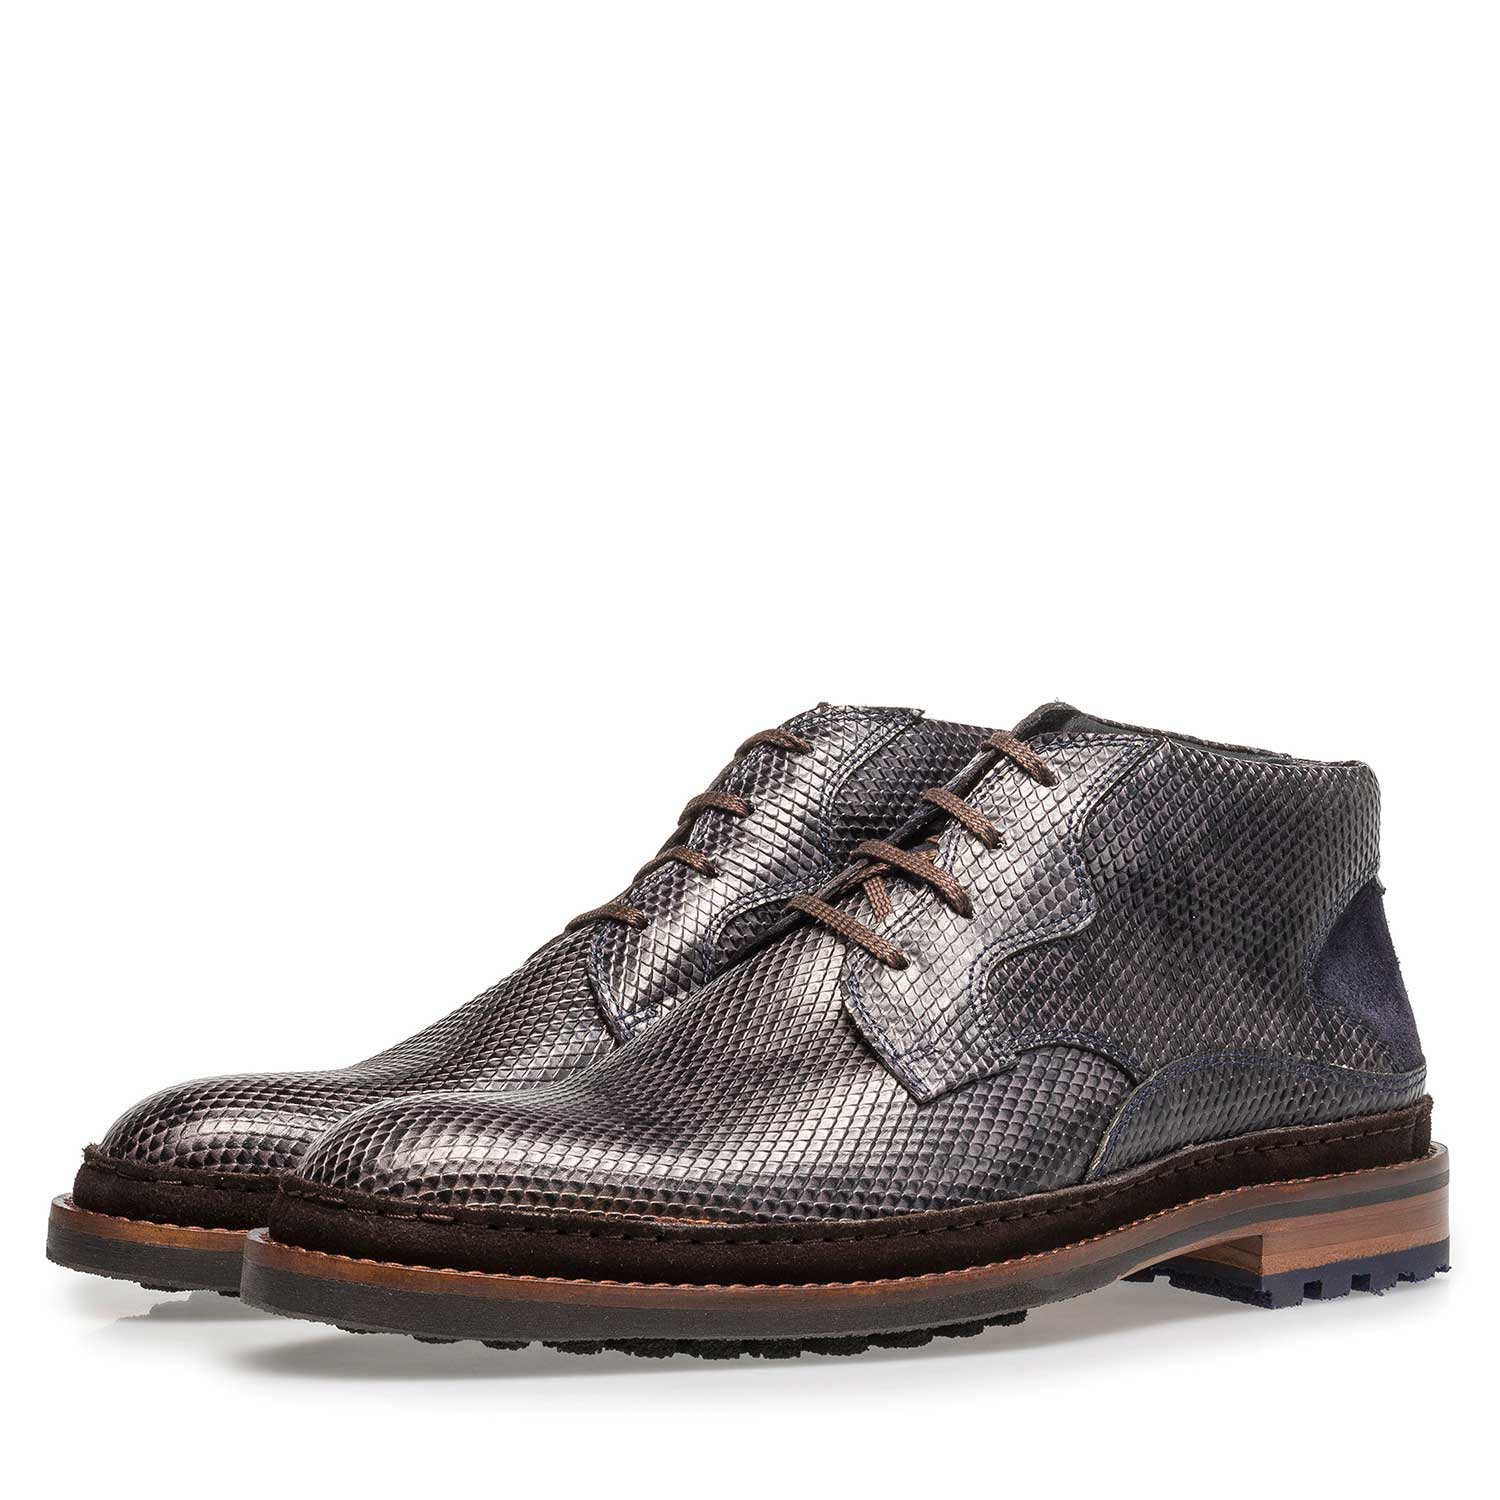 10509/07 - Dark grey leather lace boot with snake print